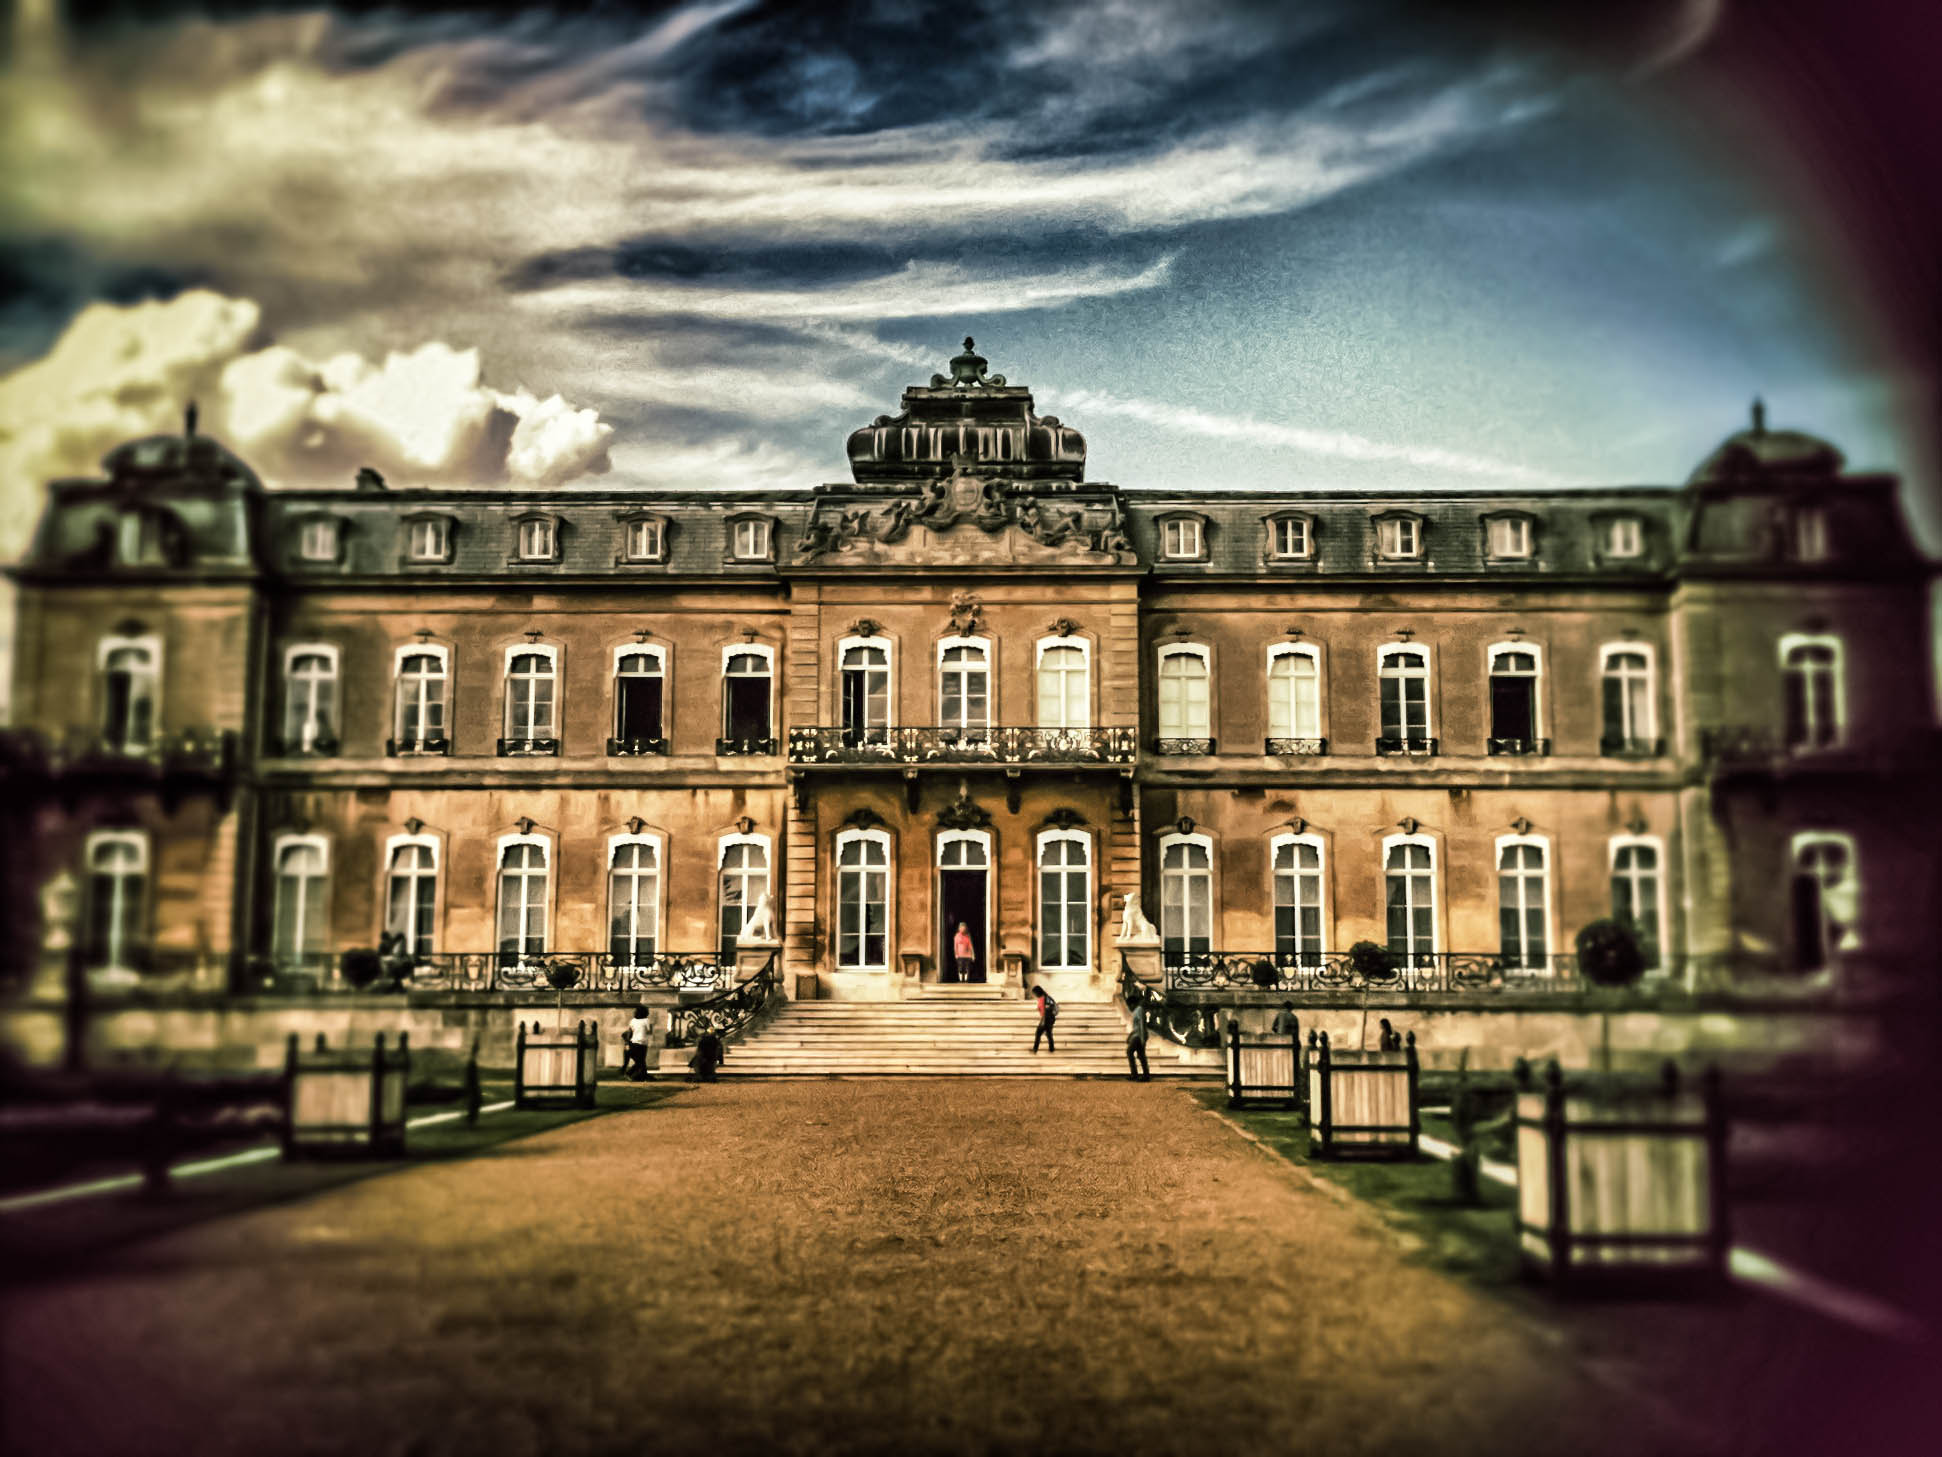 Photograph Wrest park by Lee Milner on 500px